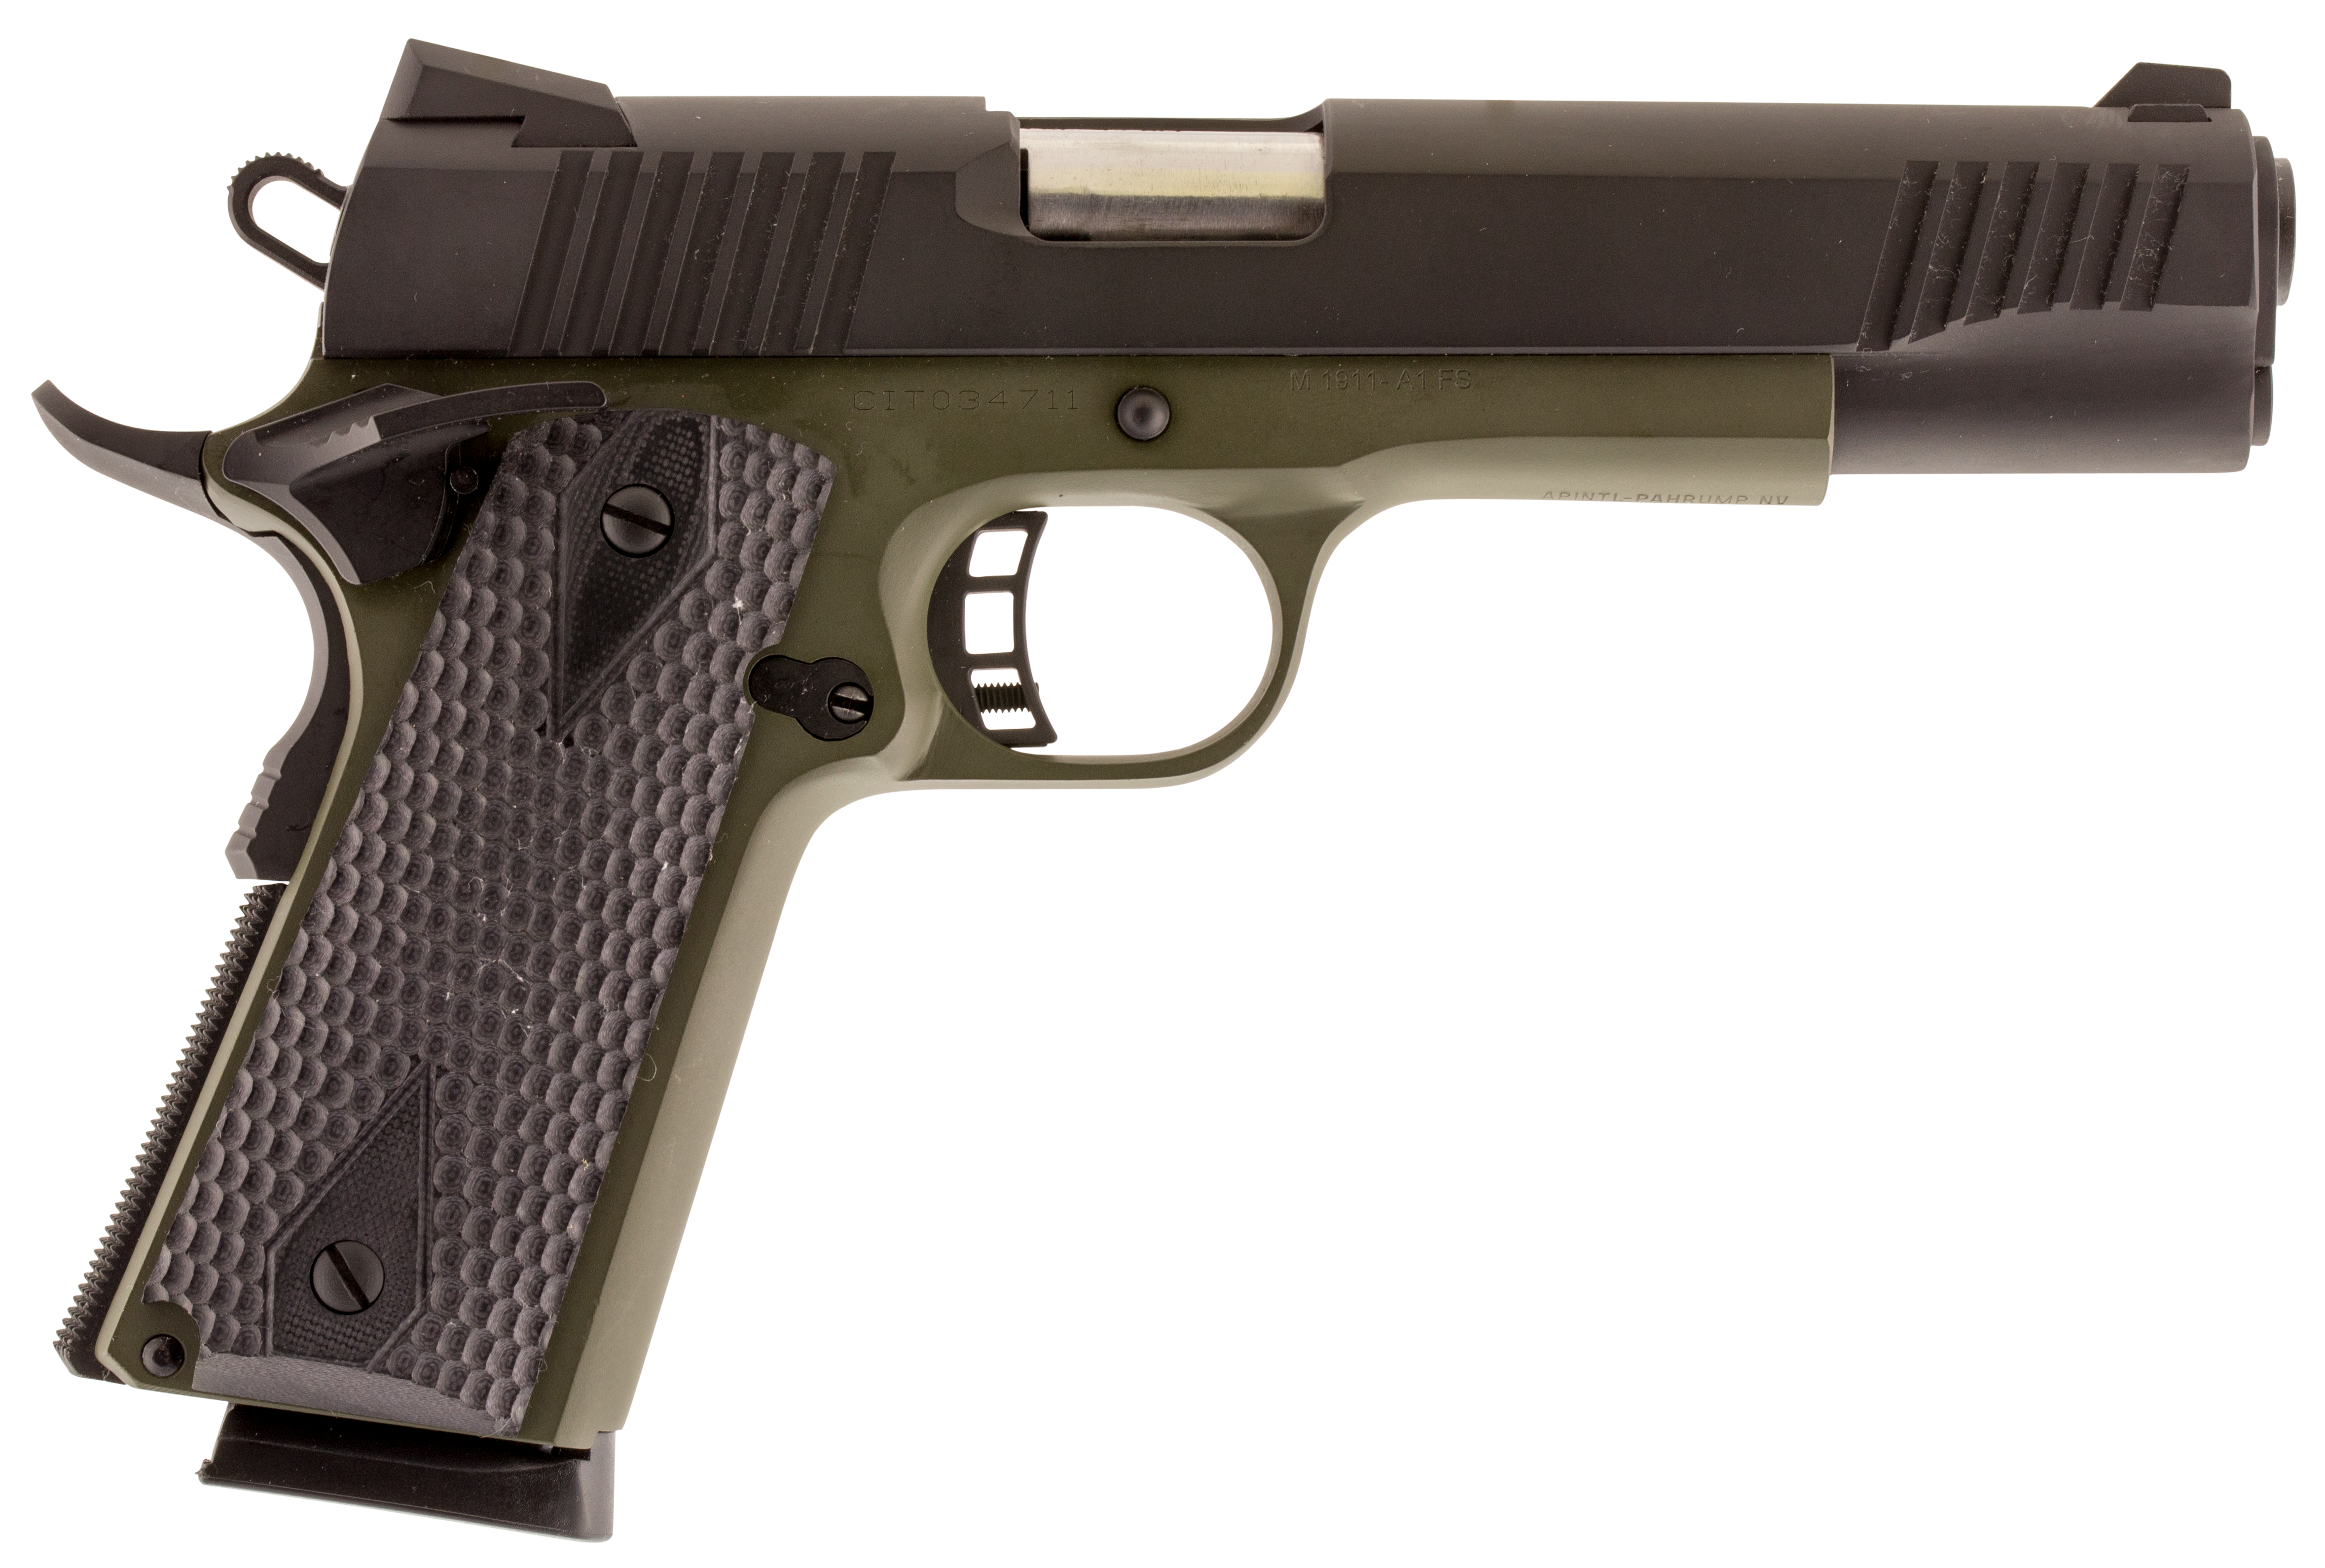 Citadel C45FS200190H00 M-1911 Cerakote Full Size Single 45 ACP 5